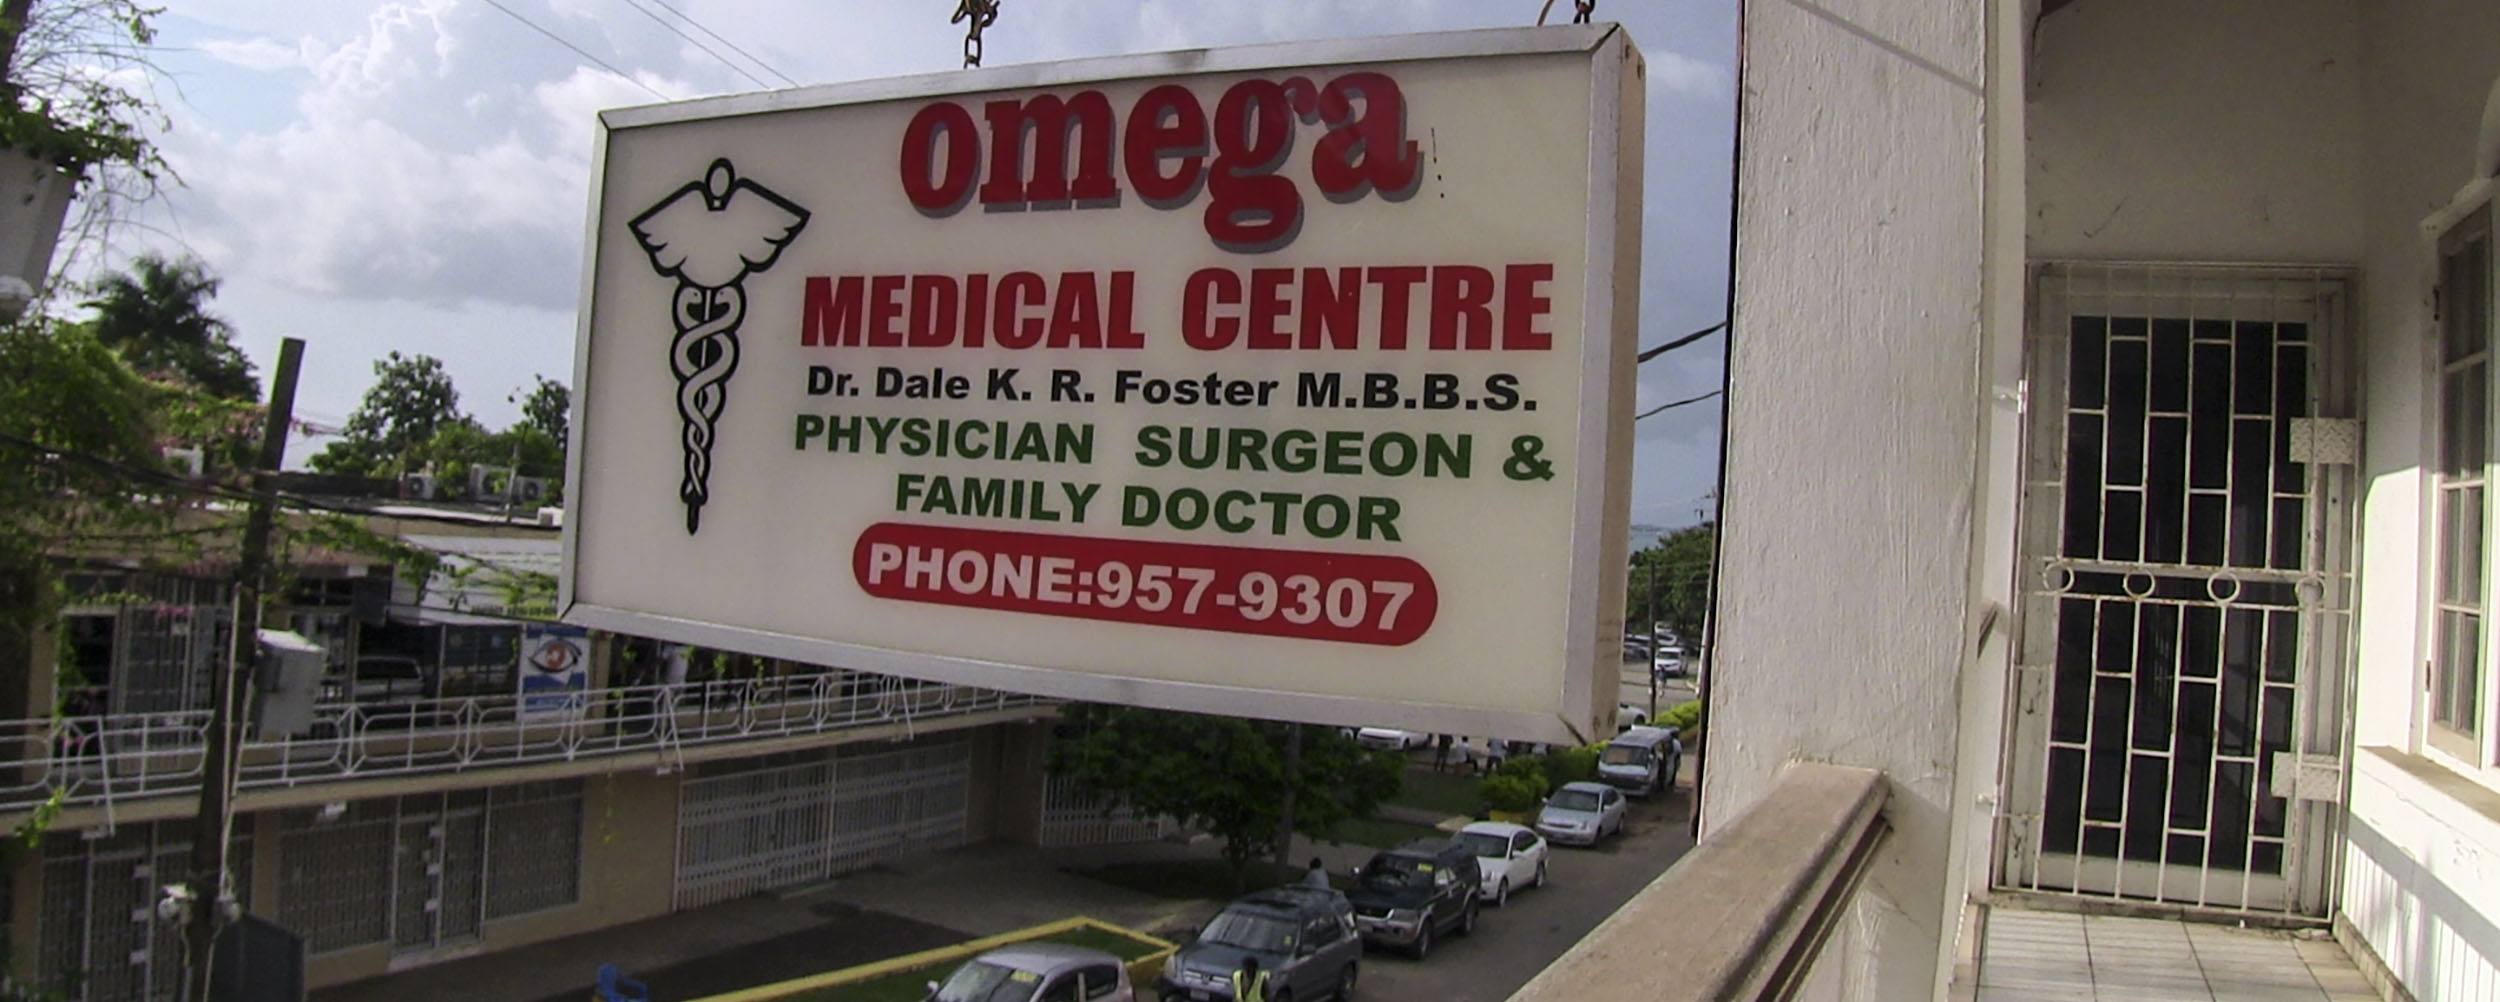 Omega Medical Centre - Negril Center - Negril Jamaica